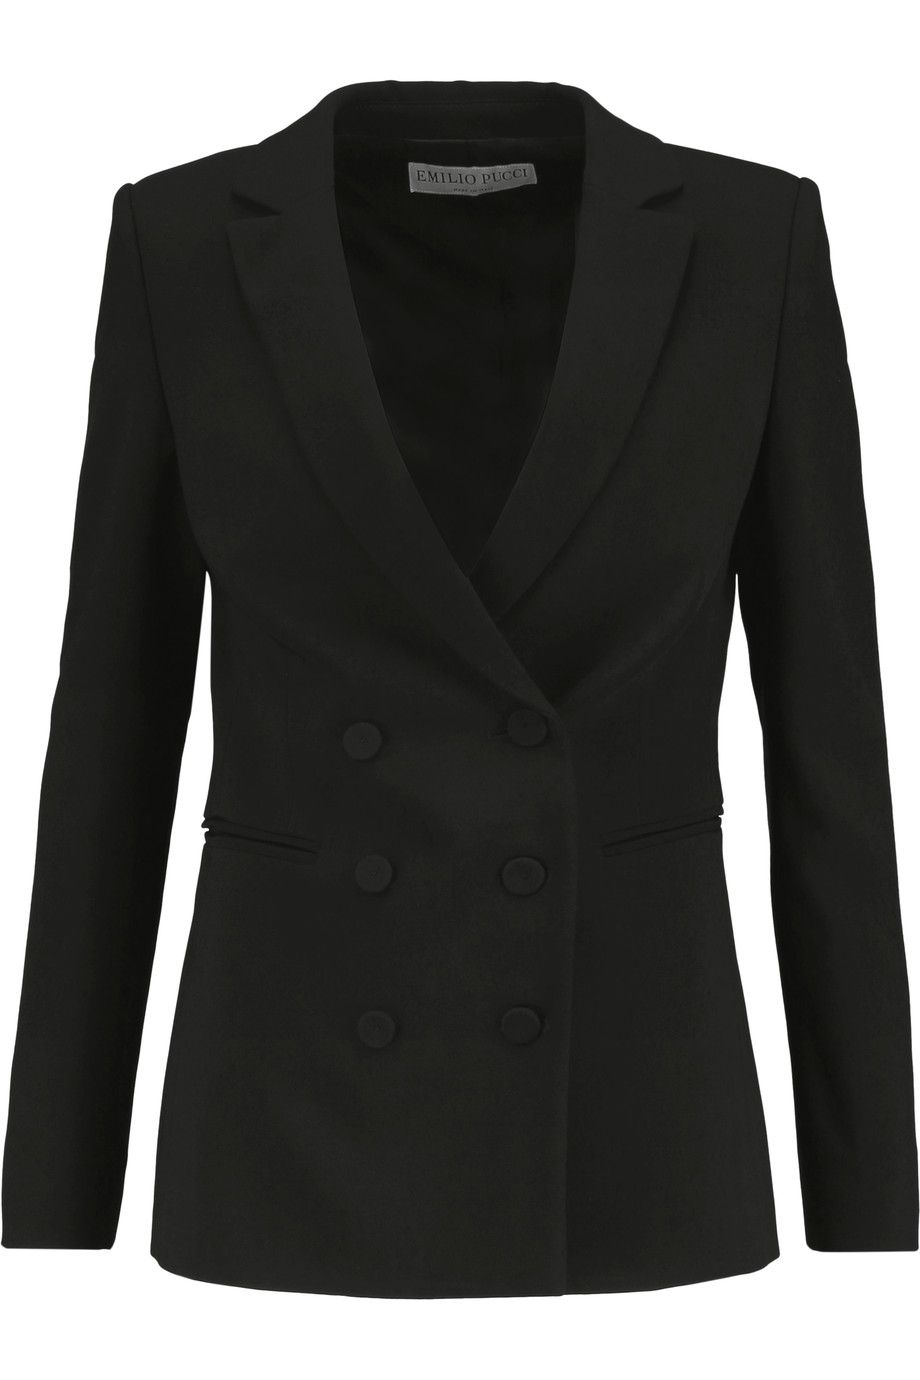 Shop on-sale Emilio Pucci Crepe blazer. Browse other discount designer Jackets & more on The Most Fashionable Fashion Outlet, THE OUTNET.COM